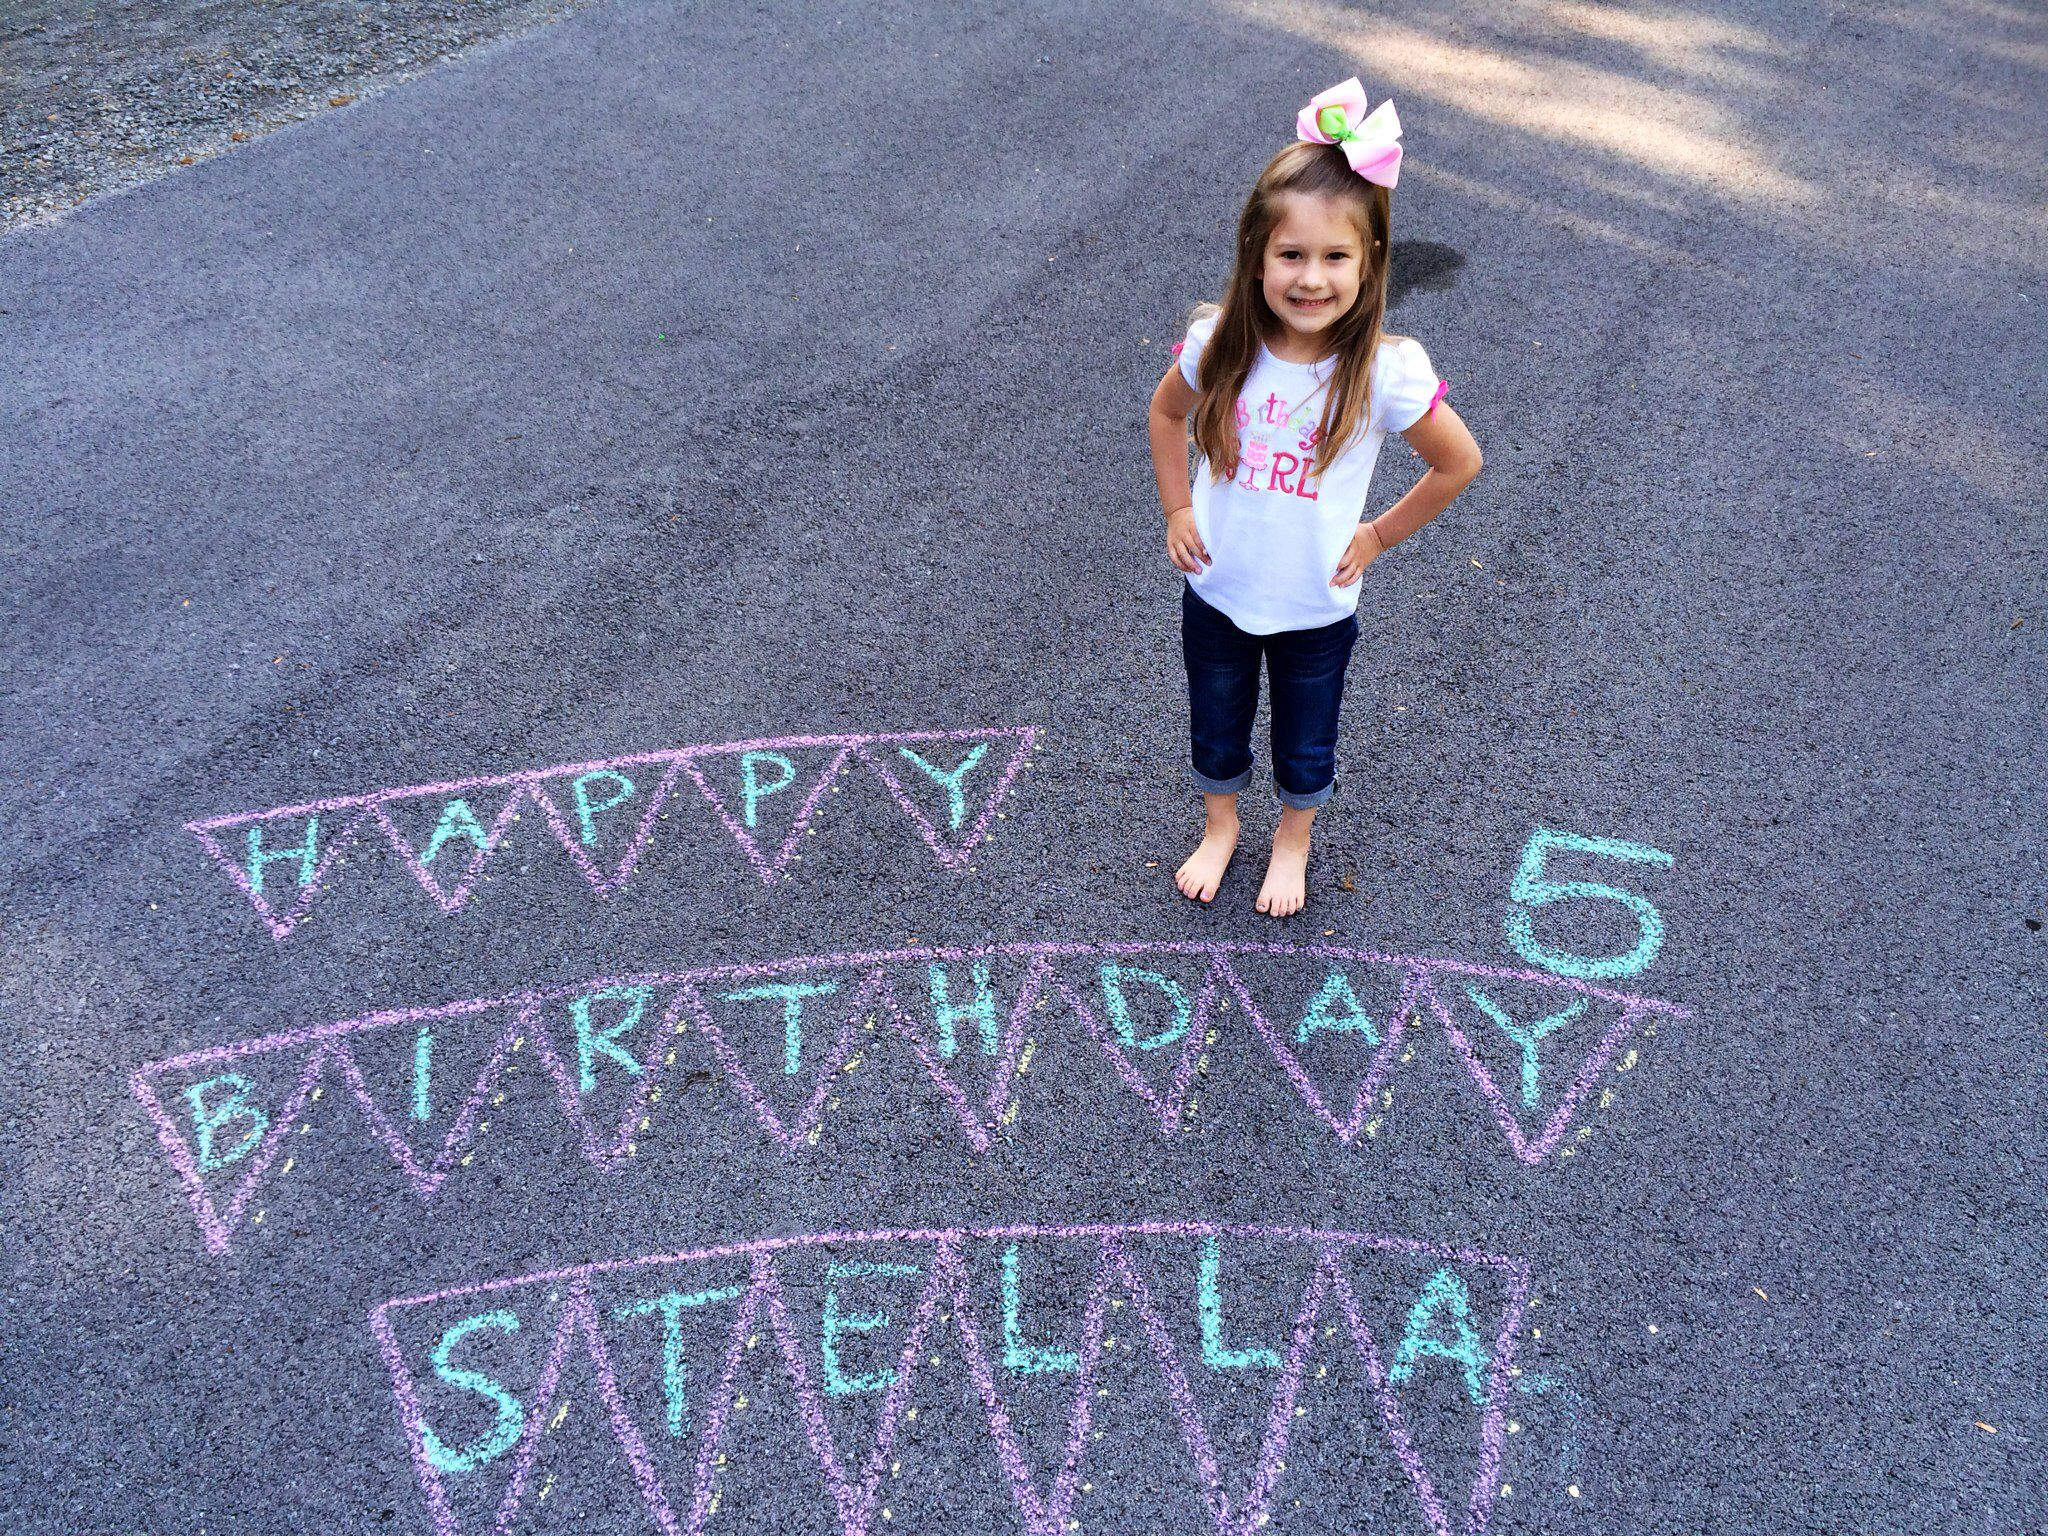 Fun way to celebrate your little ones birthday